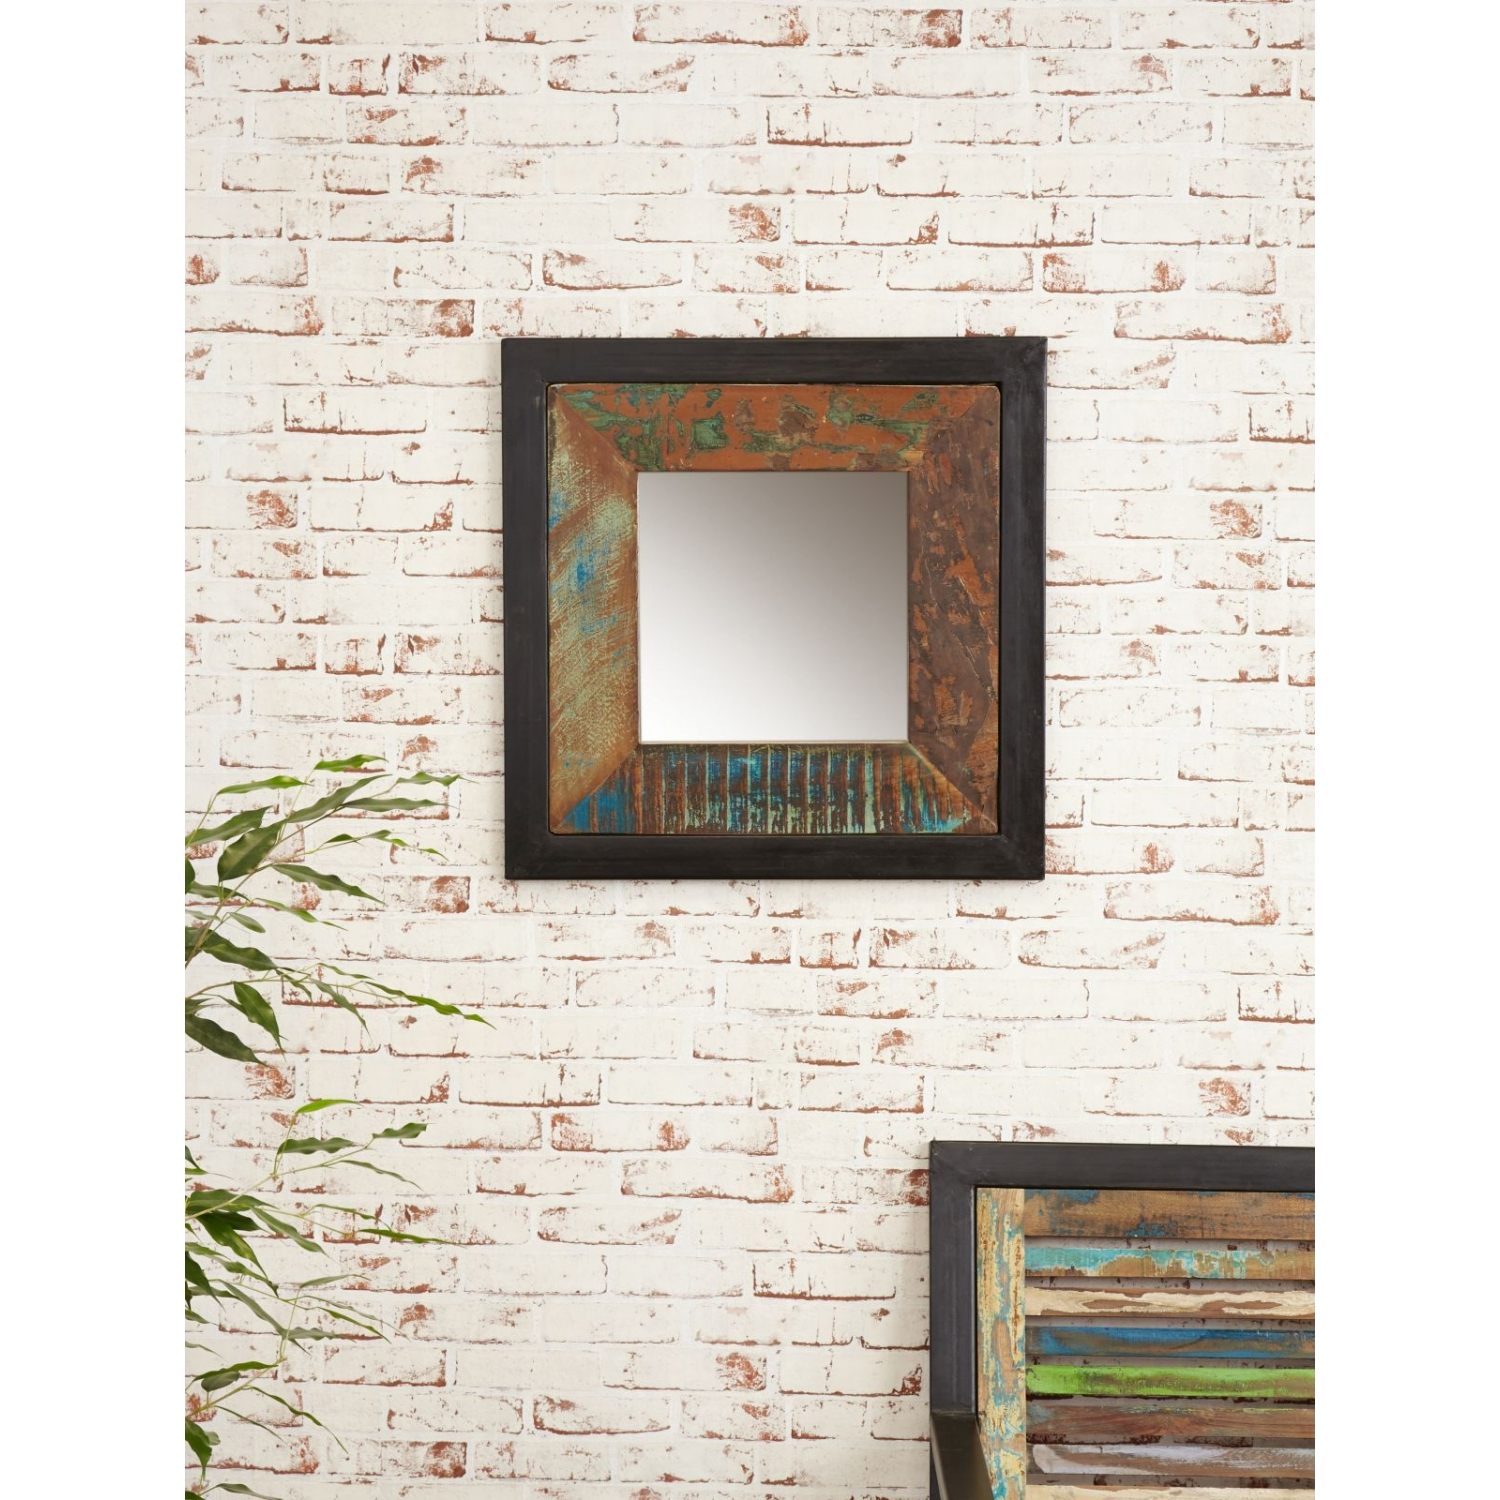 Reclaimed Wood Mirror | Mercury Glass Wall Mirror | Distressed Black Mirror